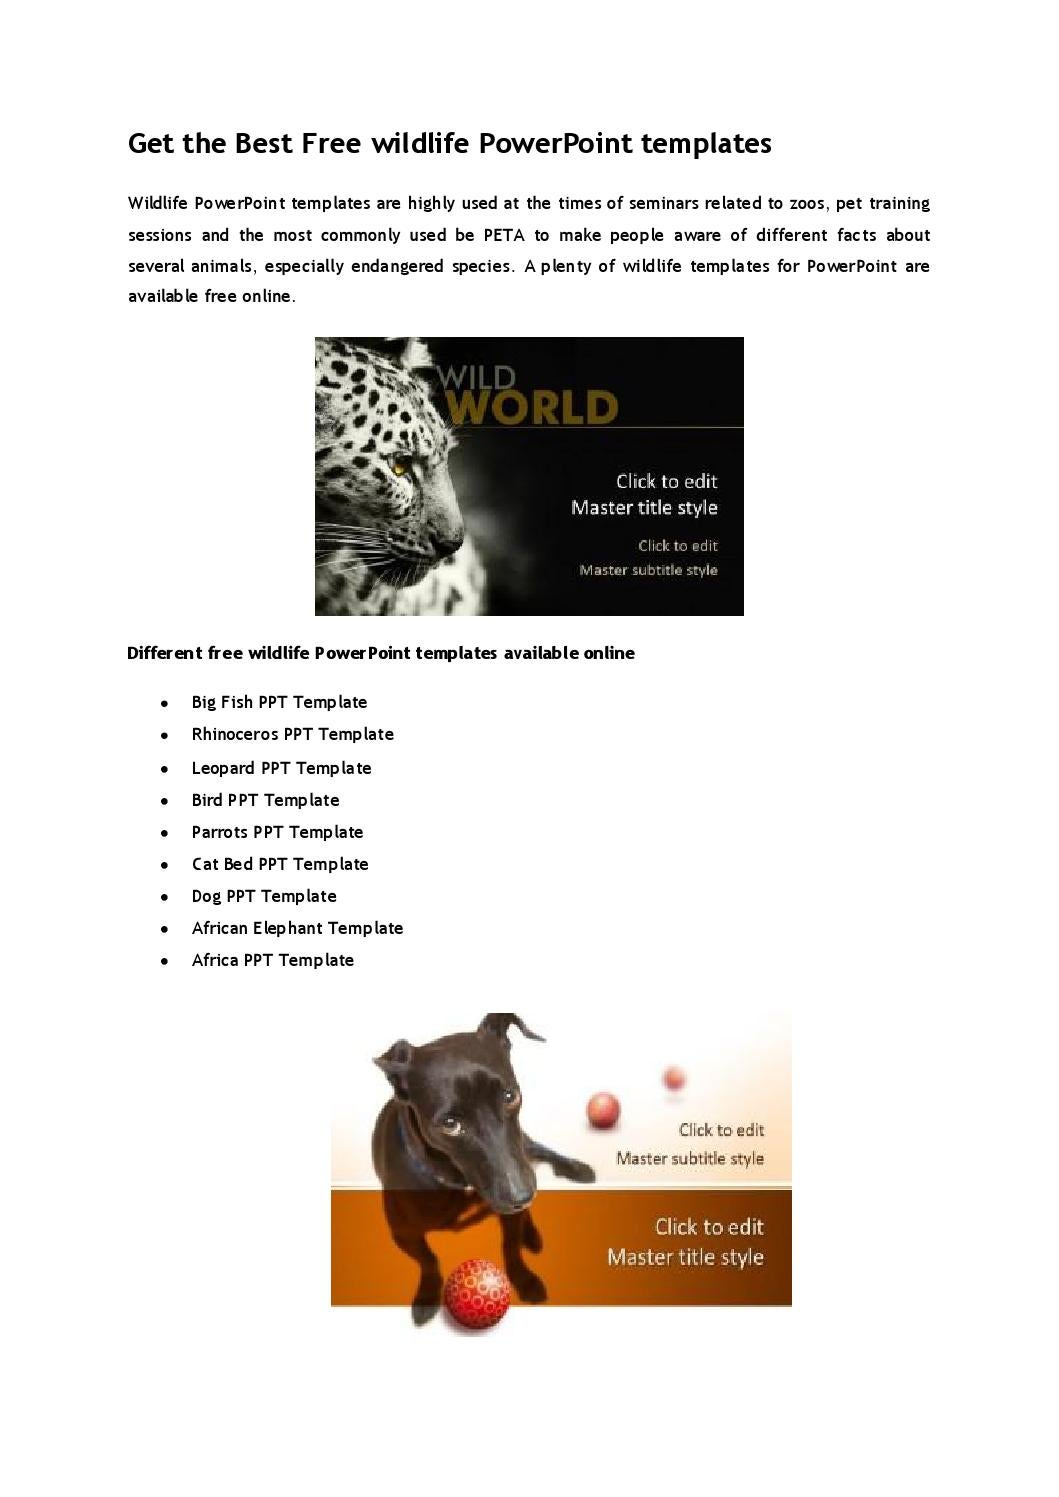 Get The Best Free Wildlife Powerpoint Templates By Ppttemplate Issuu